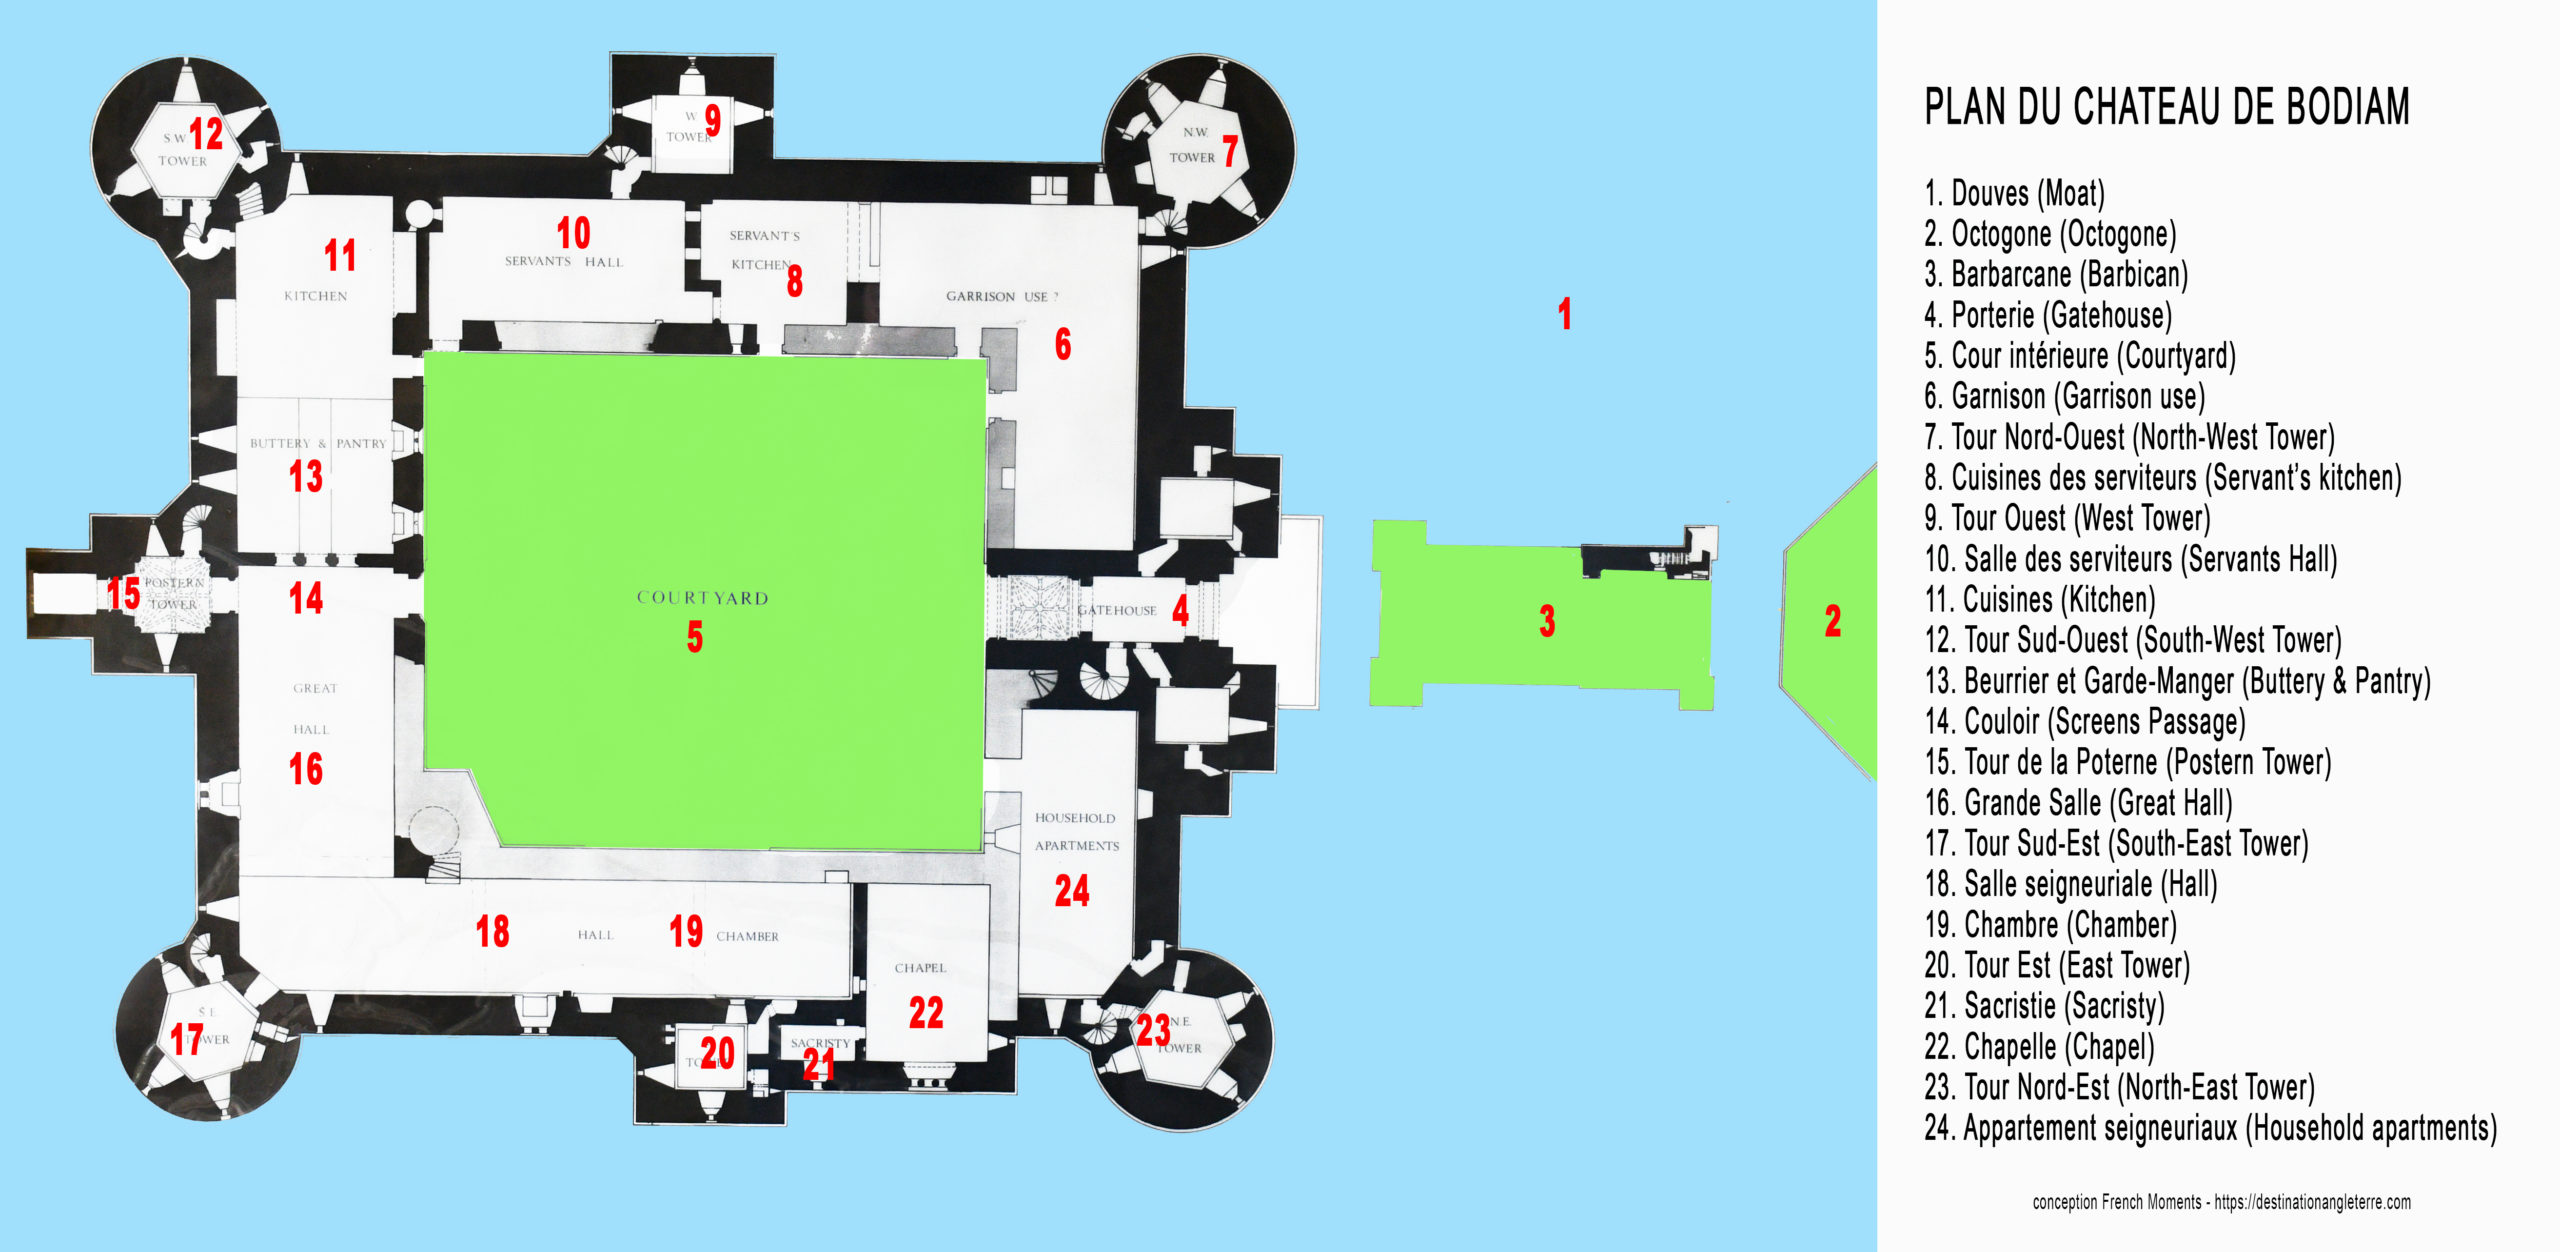 Chateau de Bodiam Plan by French Moments